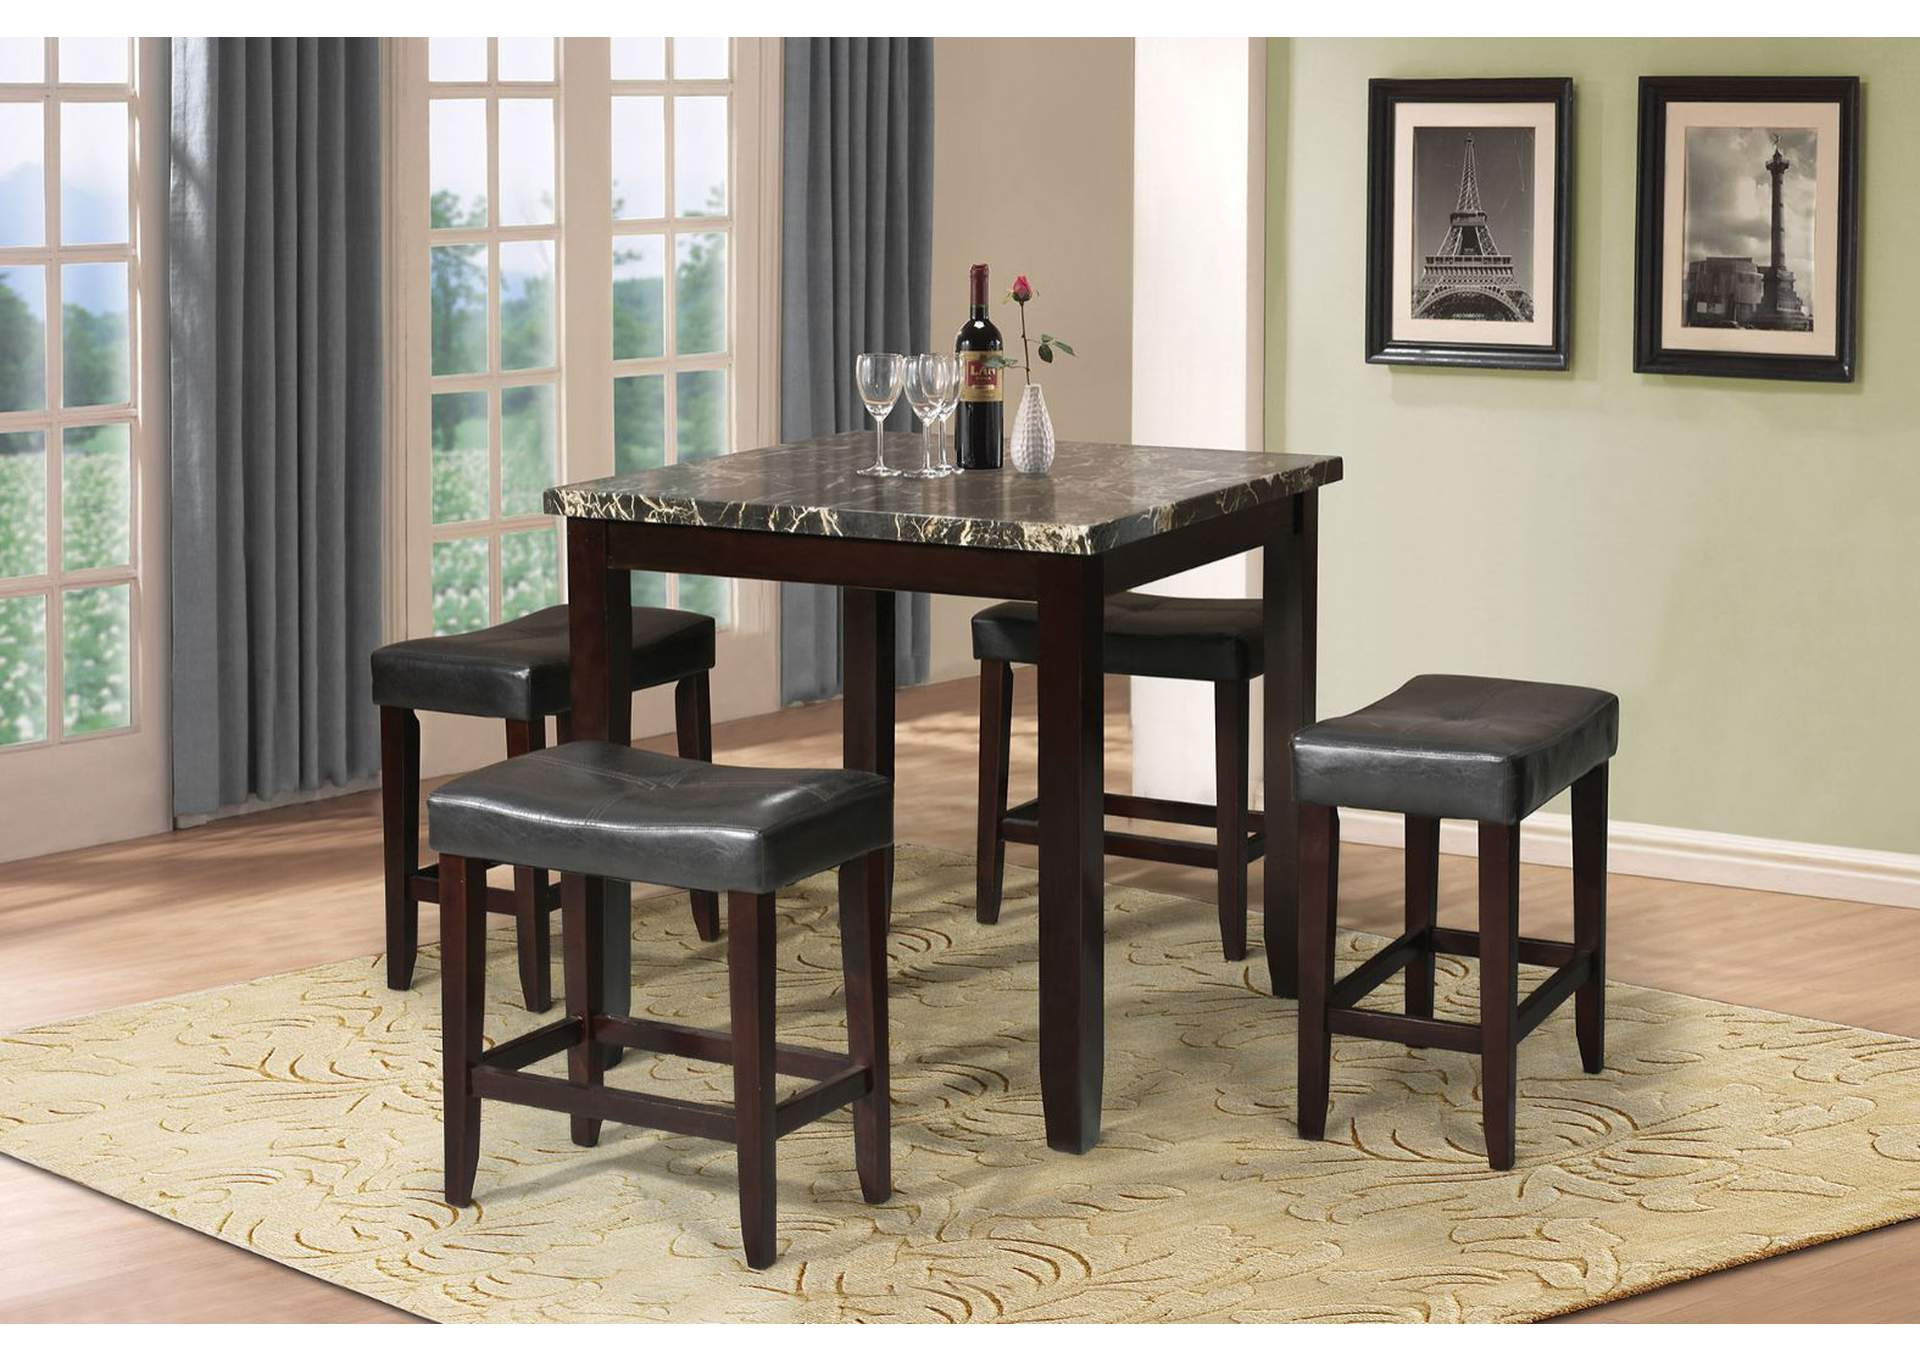 Ainsley Black Faux Marble & Espresso 5 Piece Counter Height Set,Acme